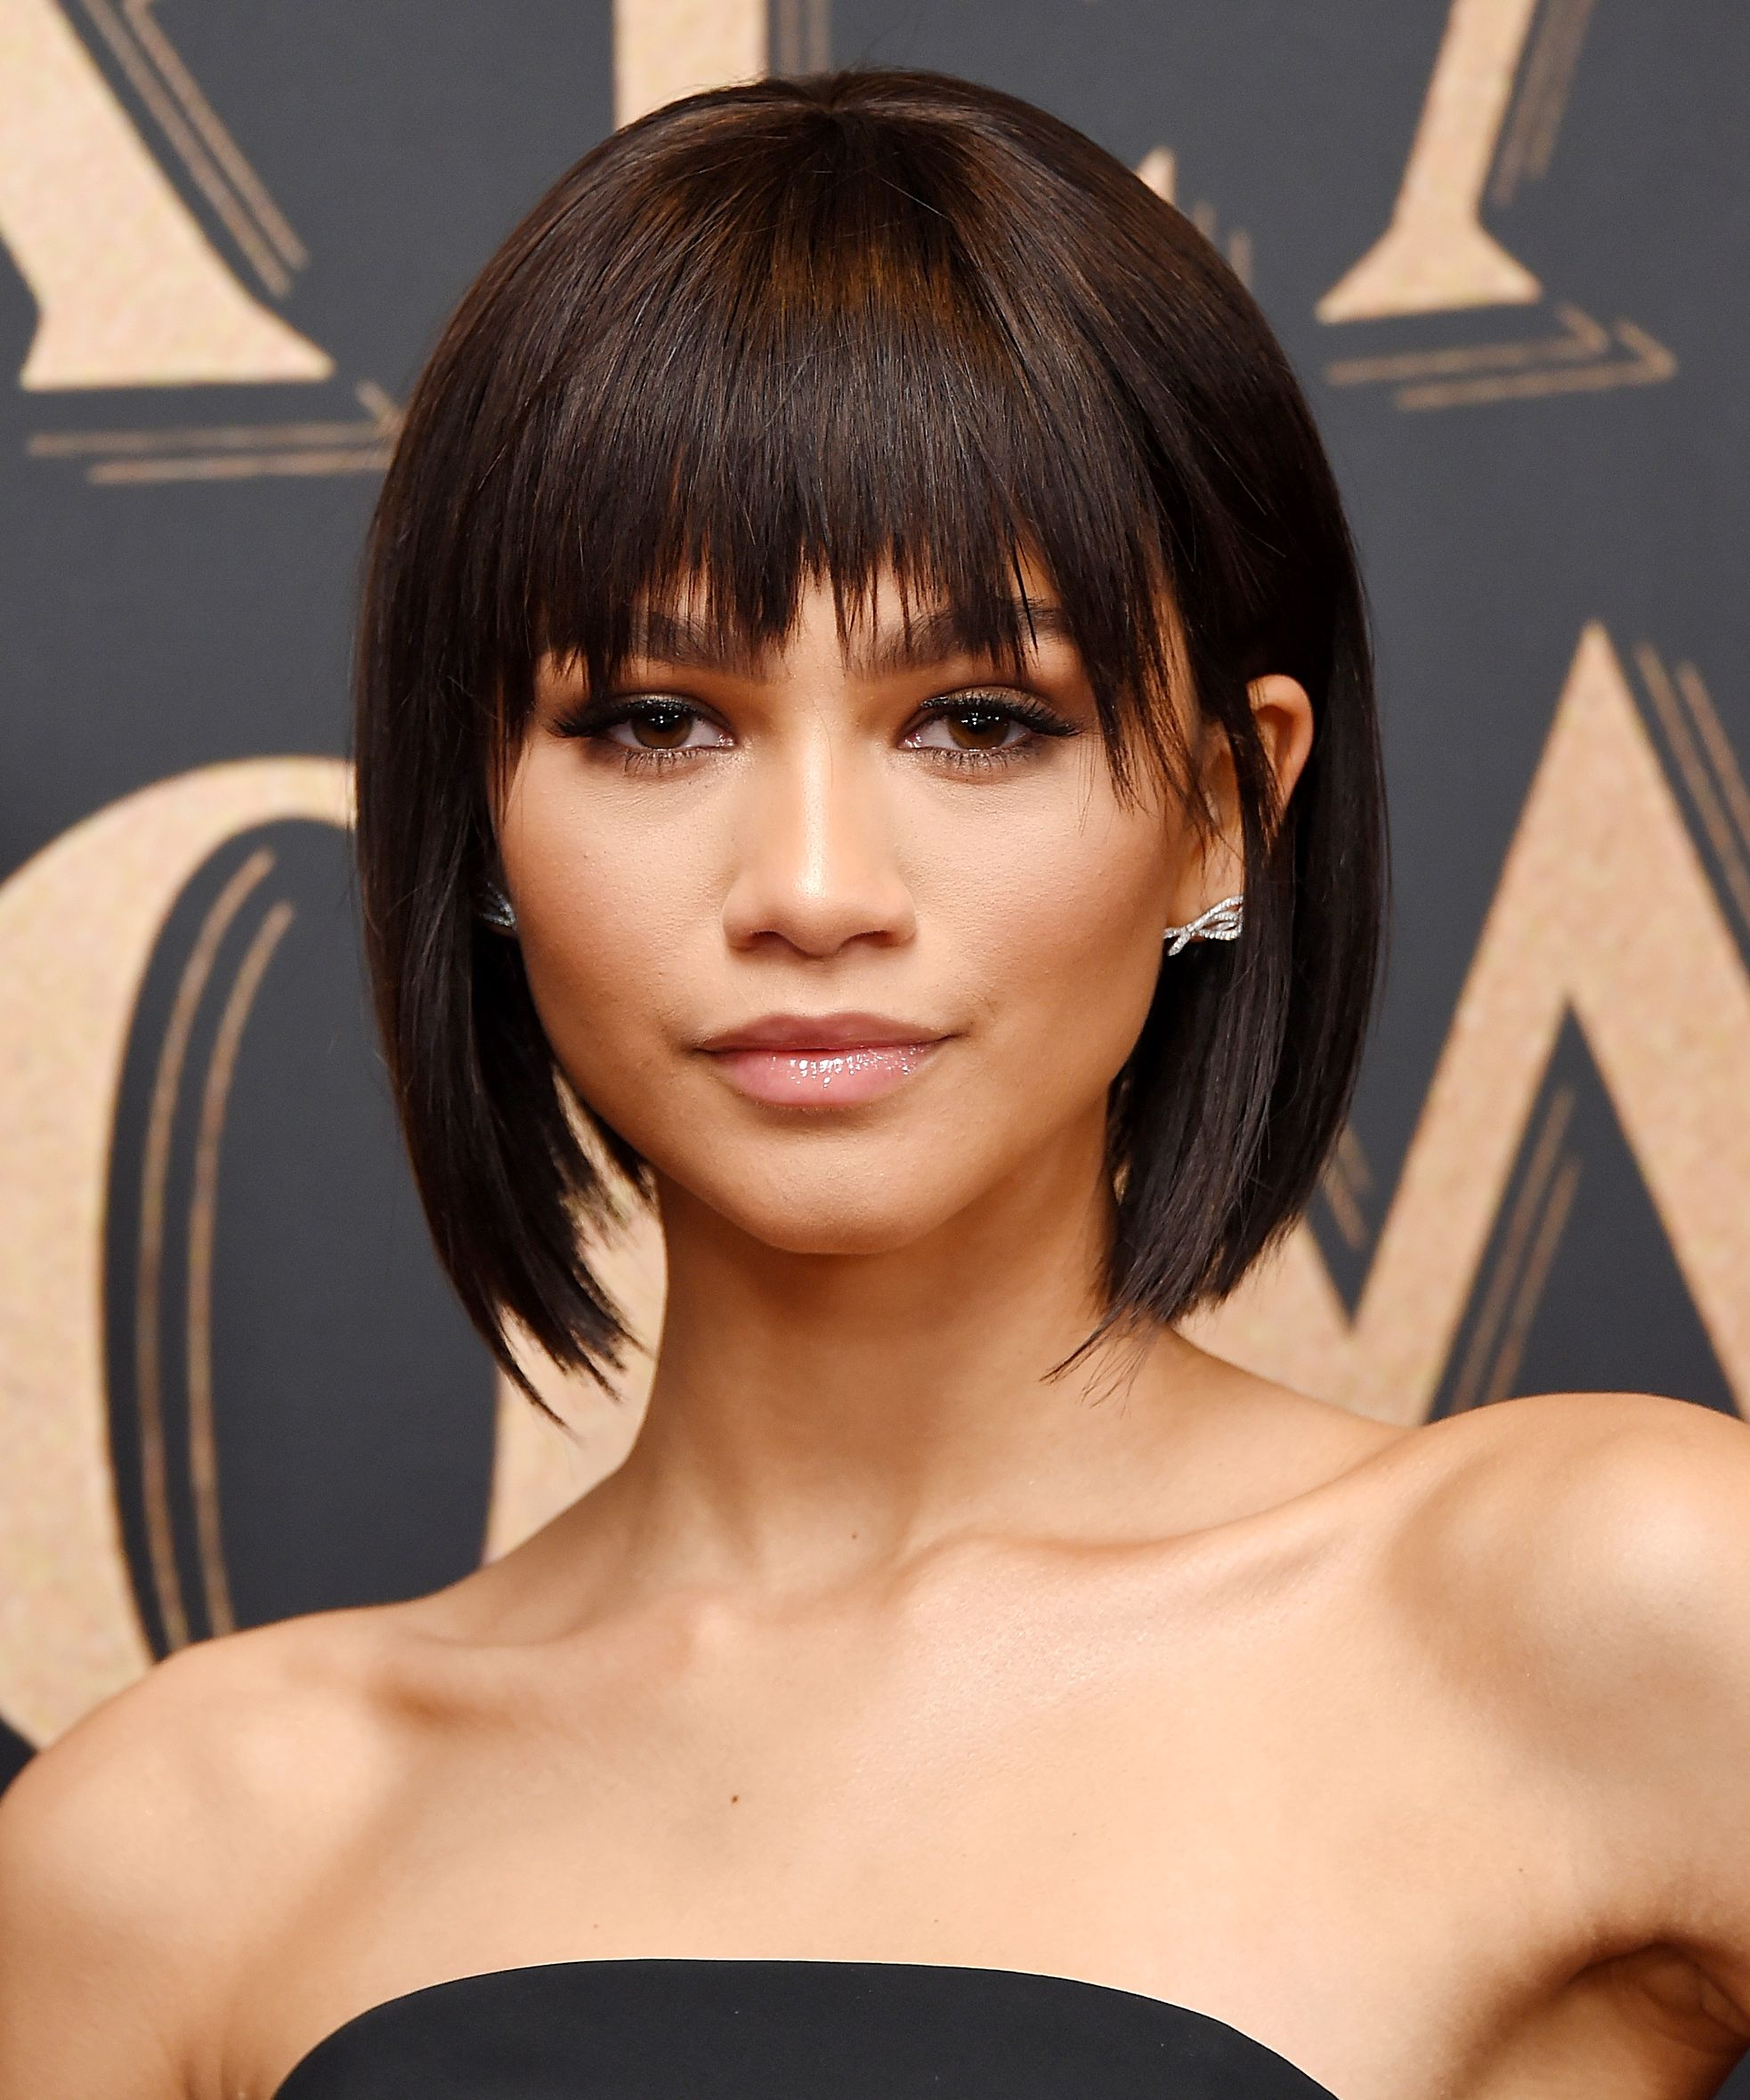 Our Top 10 Favorite Party Hairstyles Short Hair Styles Short Hair With Bangs Party Hairstyles